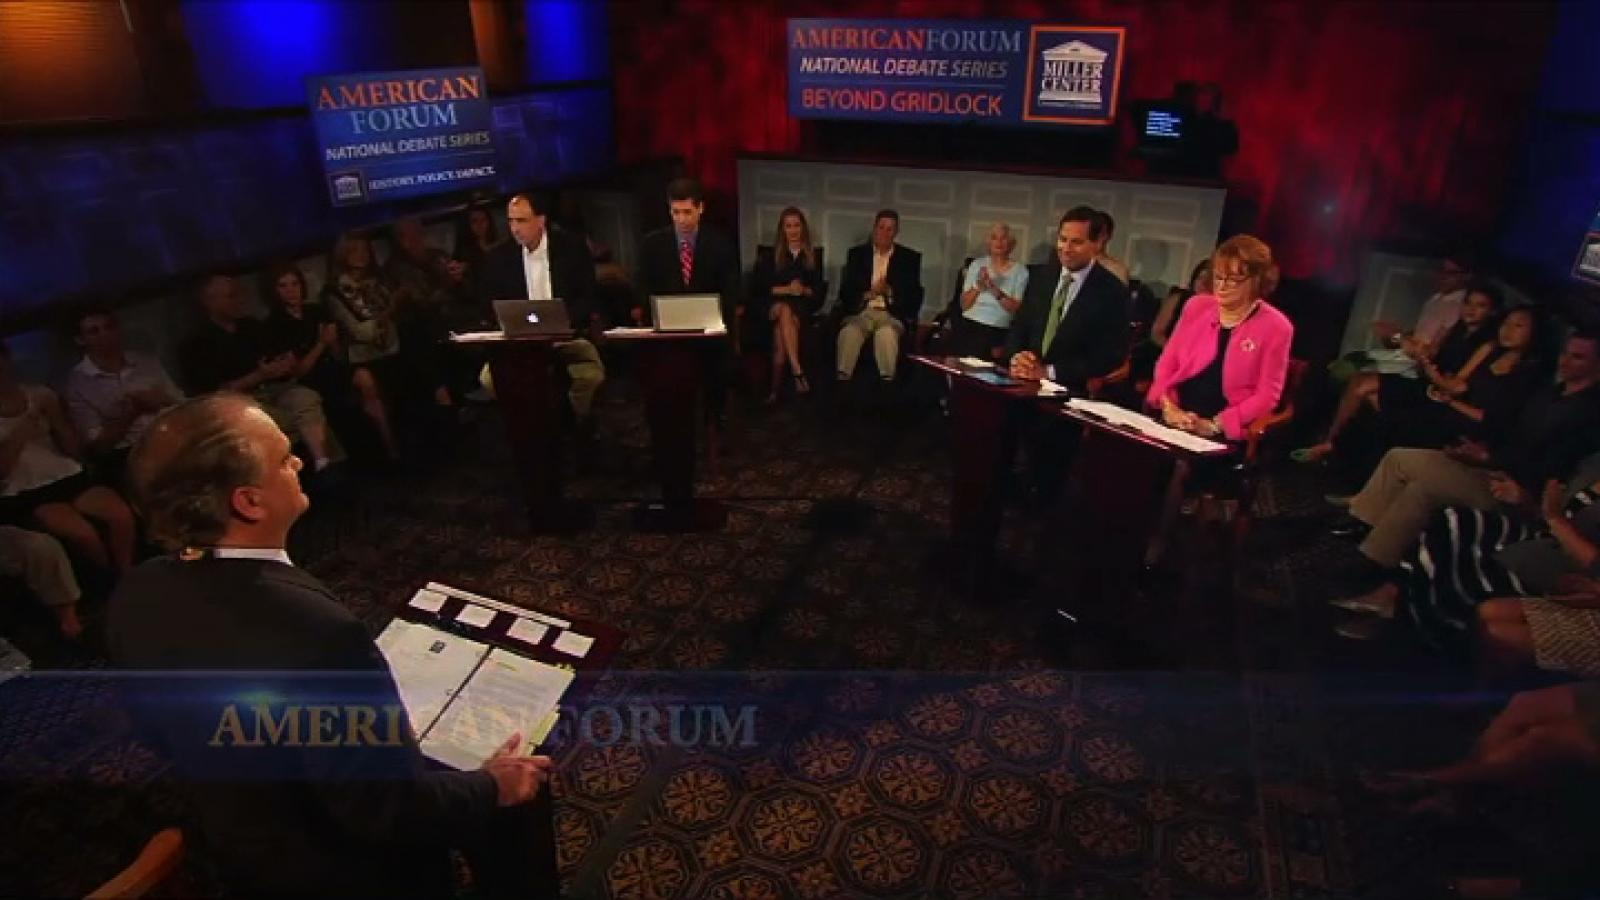 affordable care act debate